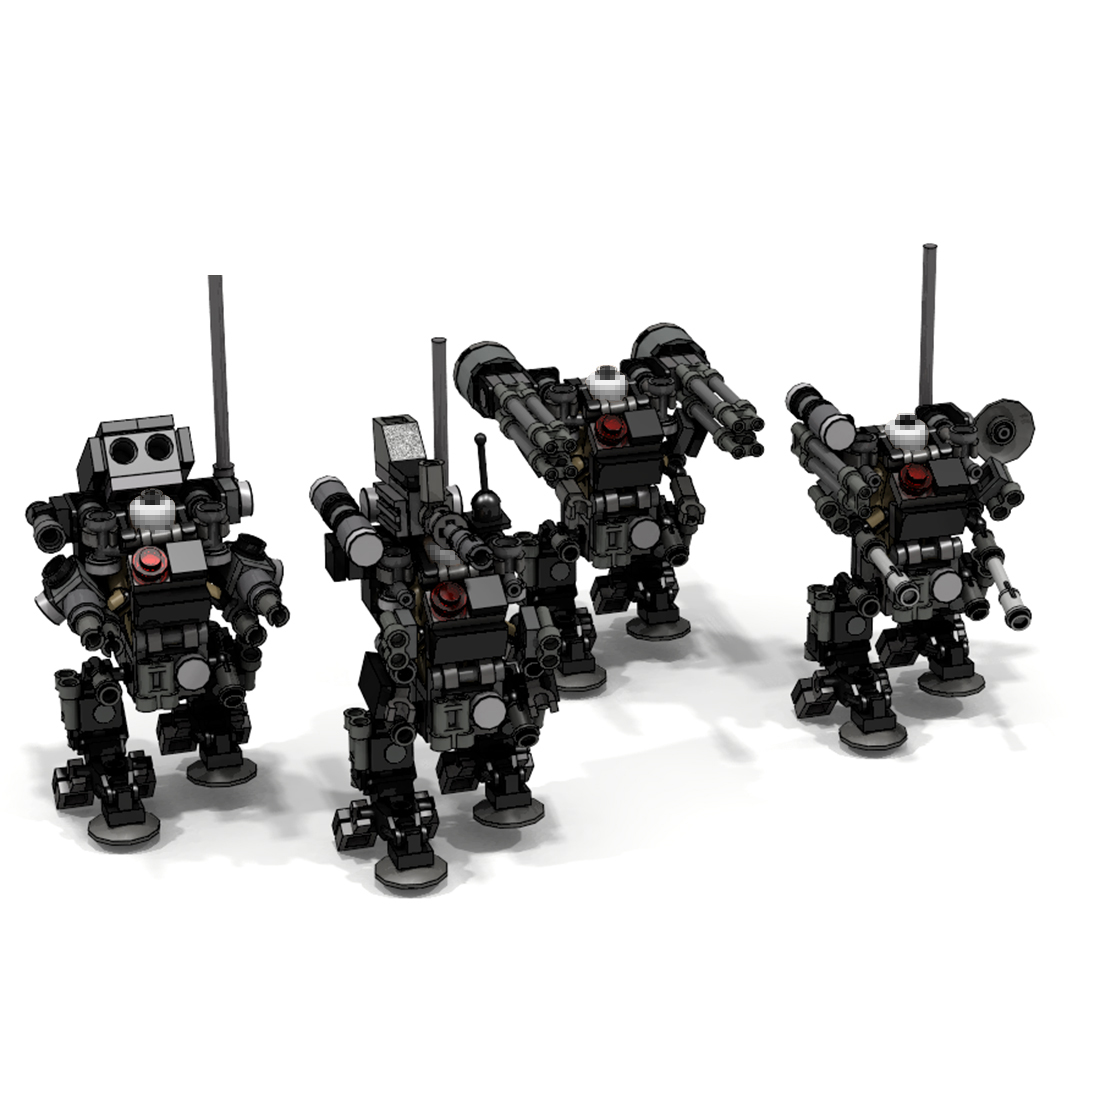 MOC Mini Tratical Trooper Sniper Trooper Model Small Particle Building Blocks Educational Toy Model Building Set Birthday Gift